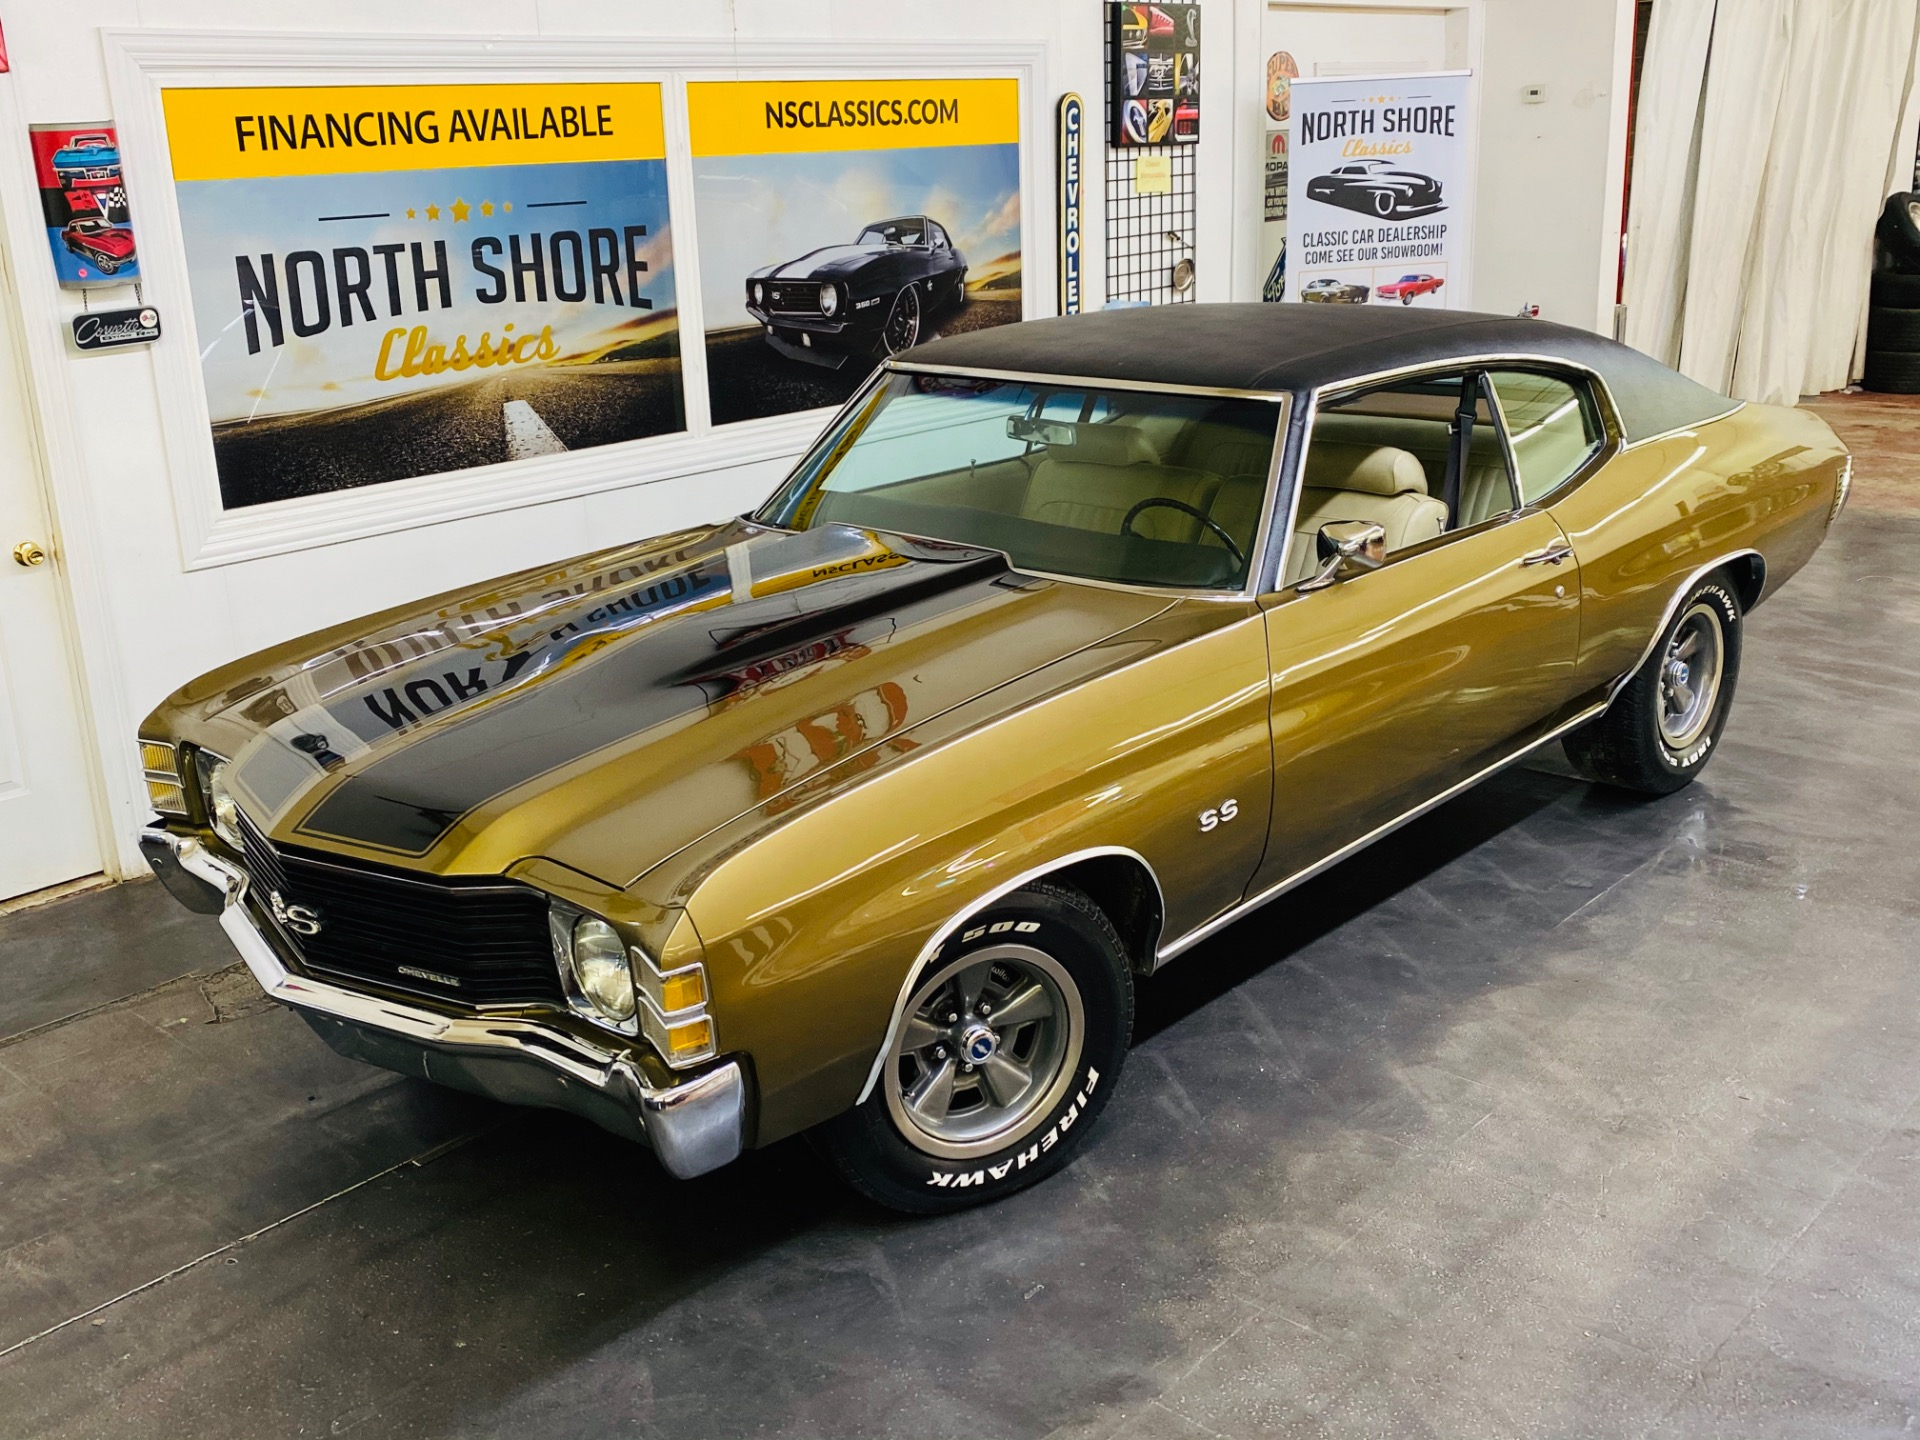 Used 1972 Chevrolet Chevelle -SUPER SPORT TRIBUTE - 383 ENGINE - 5 SPEED - DANA 60 REAR - SEE VIDEO | Mundelein, IL